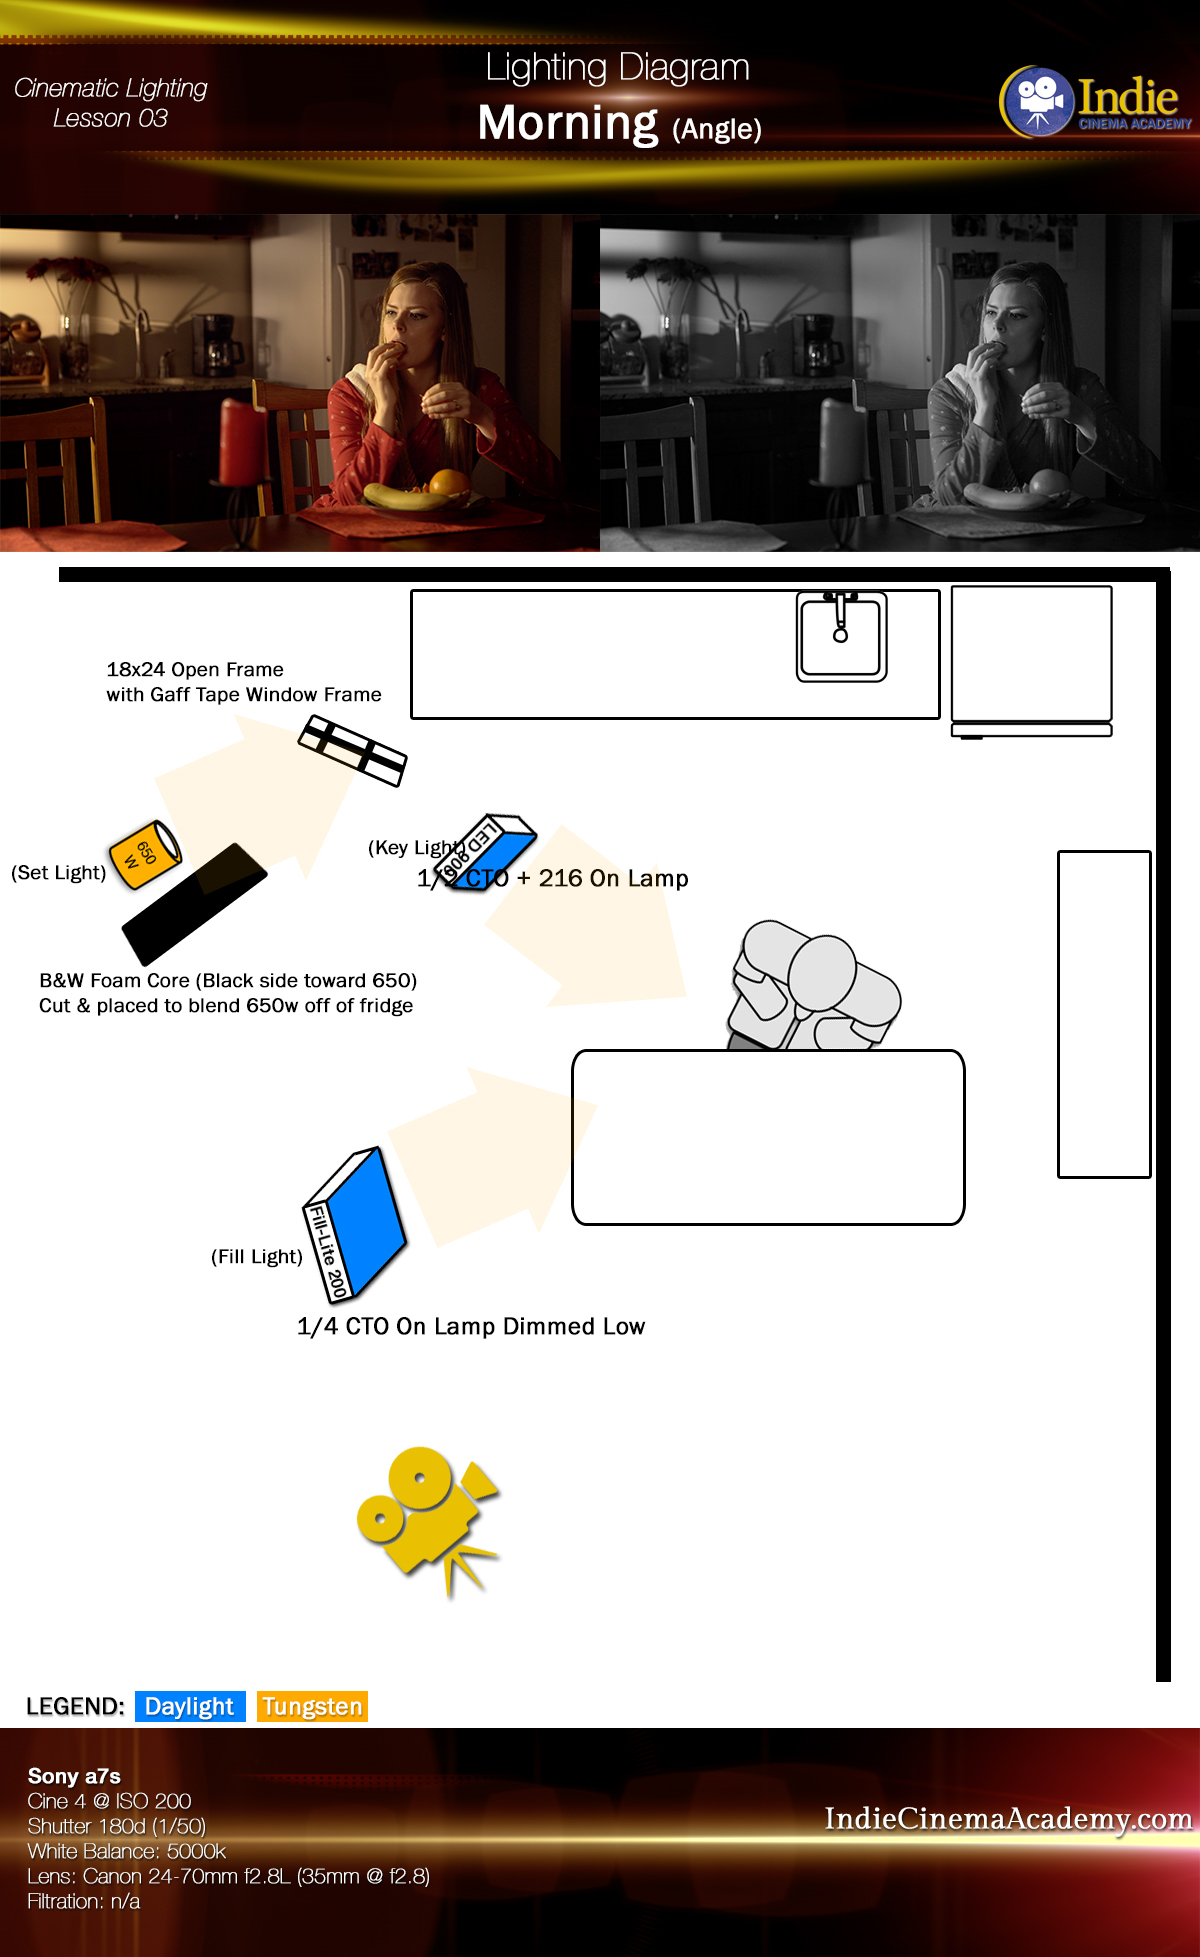 Lighting Diagram Morning Angle Large Lc103 Indie Cinema Academy Low Key